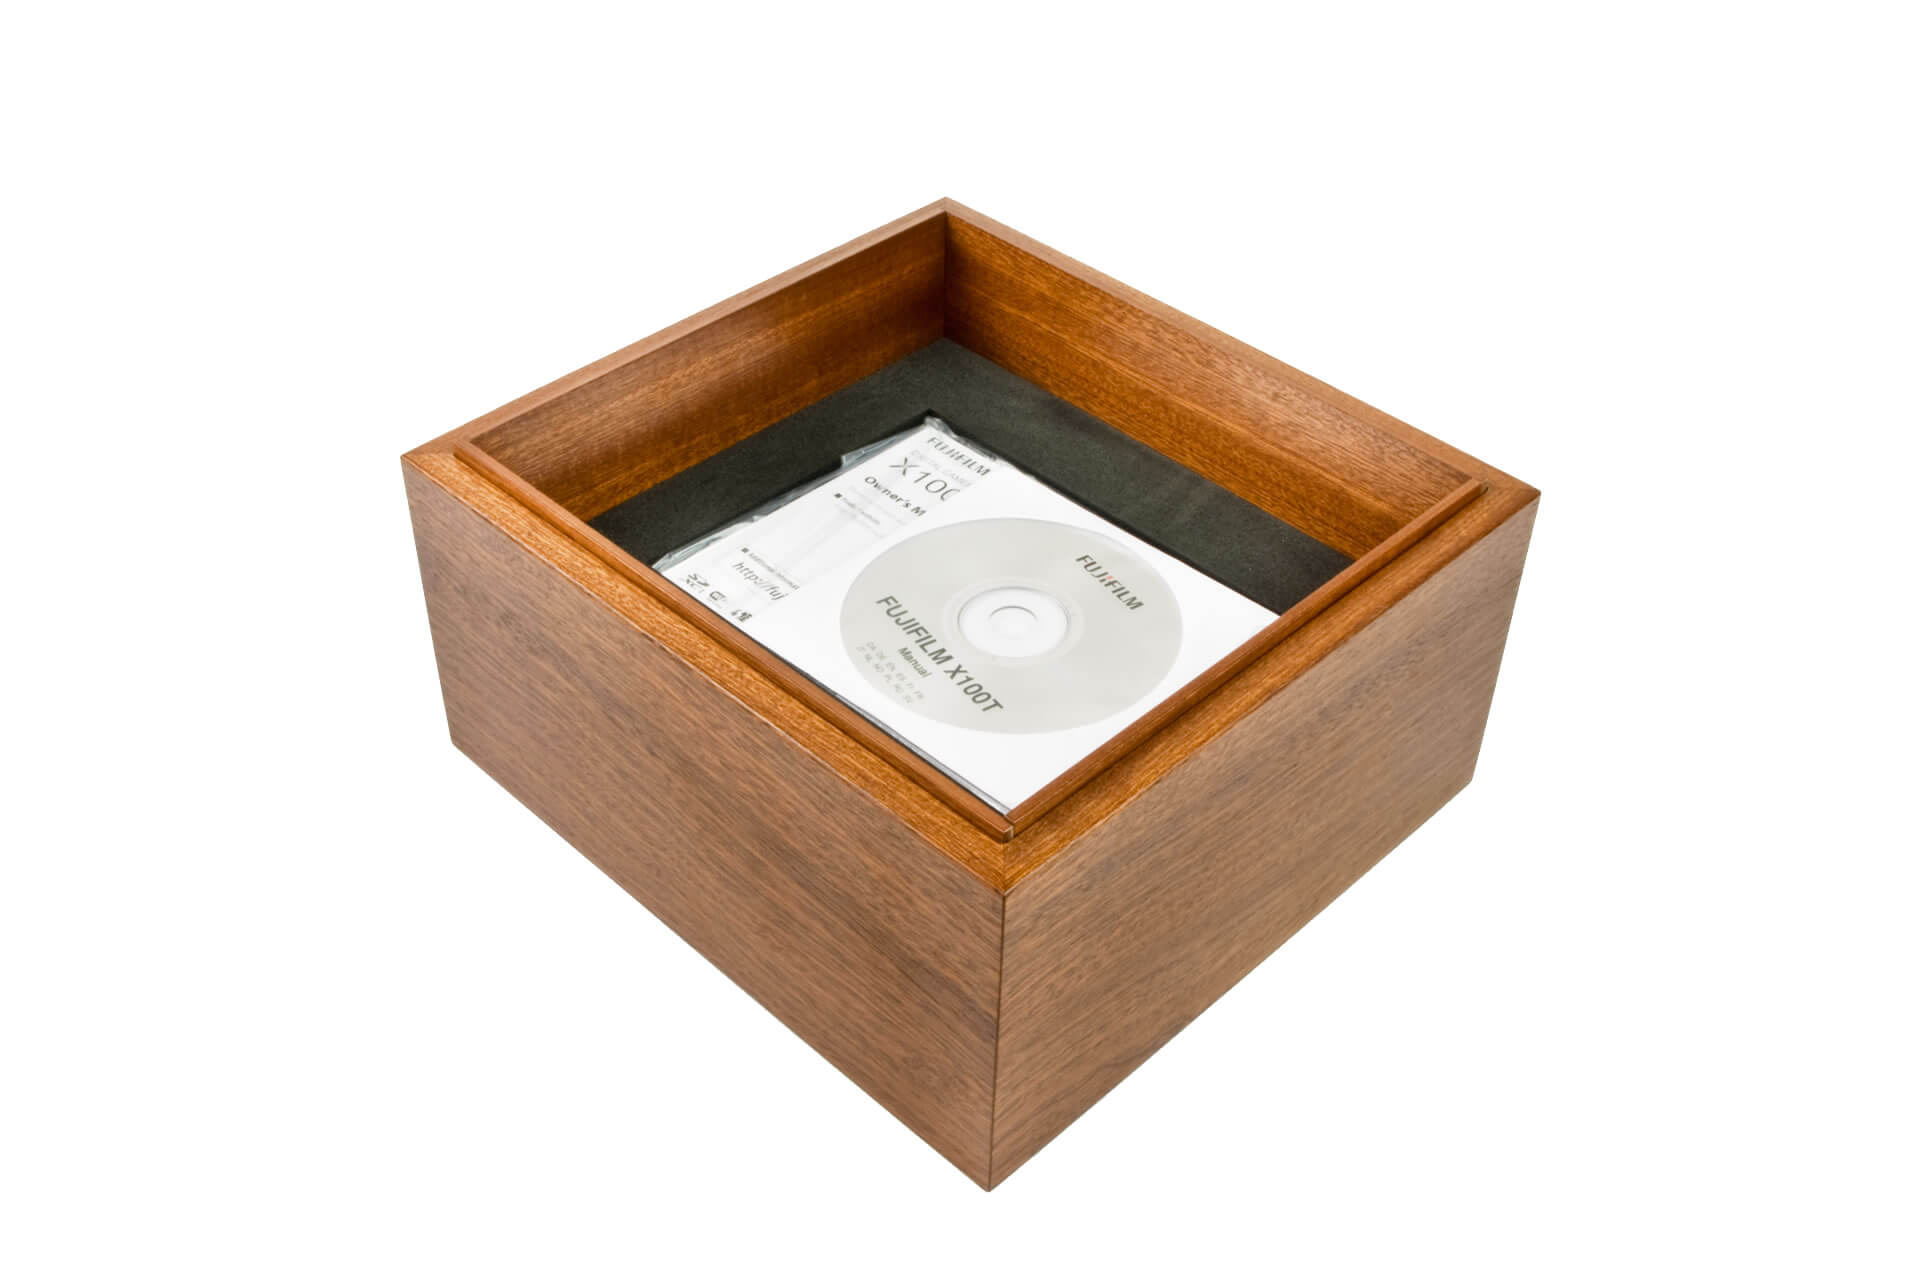 bespoke wooden packaging box lift off lid mahogany clear lacquer internal detail level 3